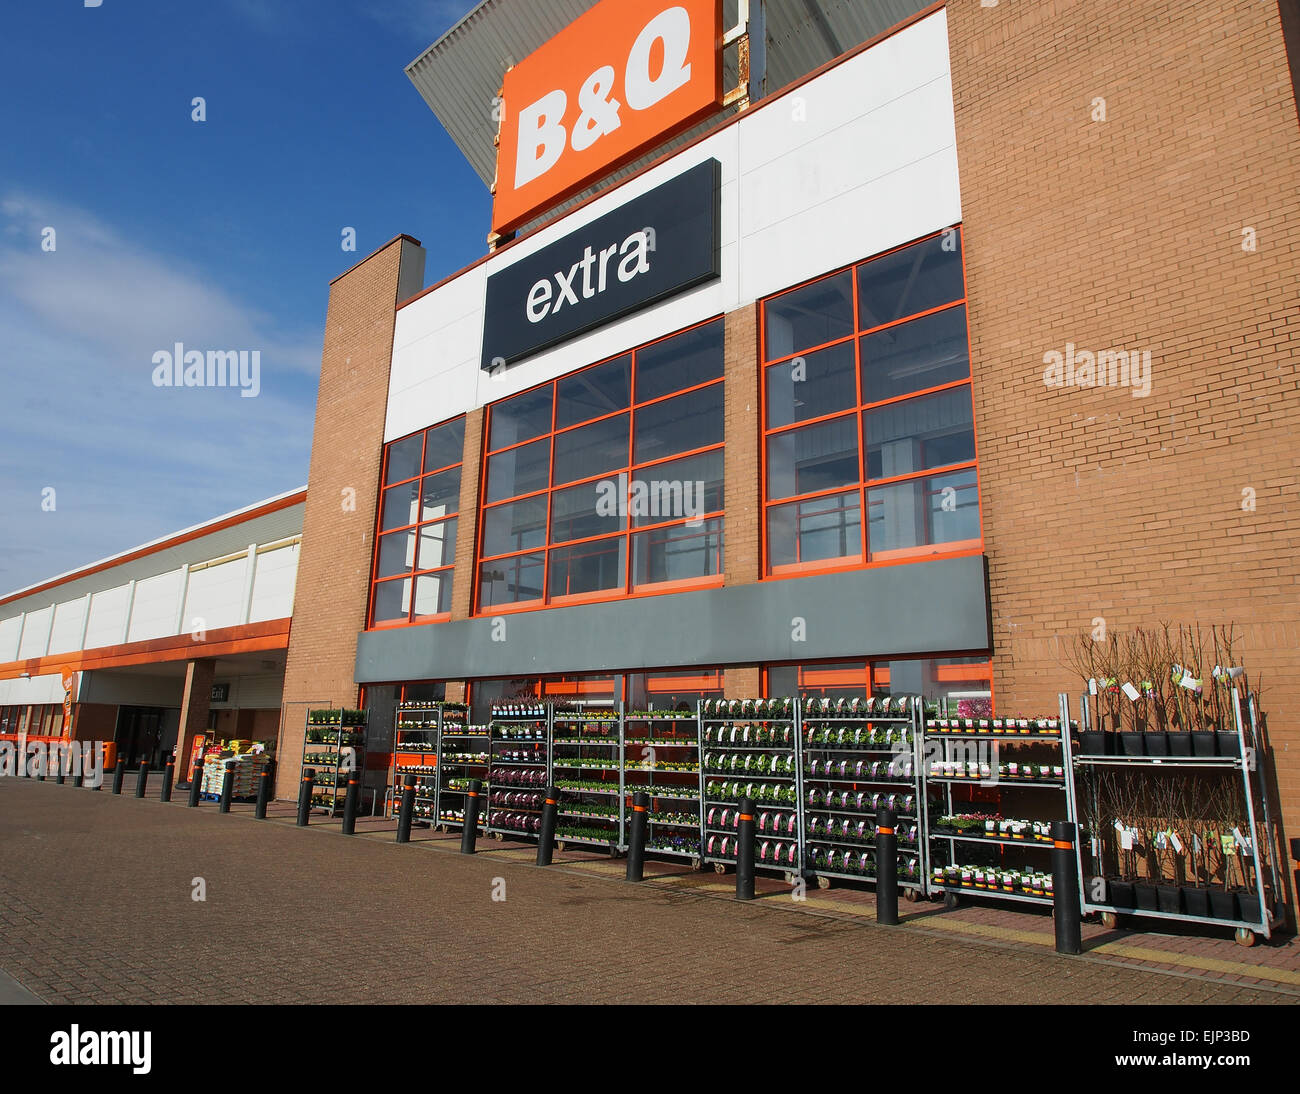 B & Q Store in Bolton, Lancashire, England, with plants on display outside